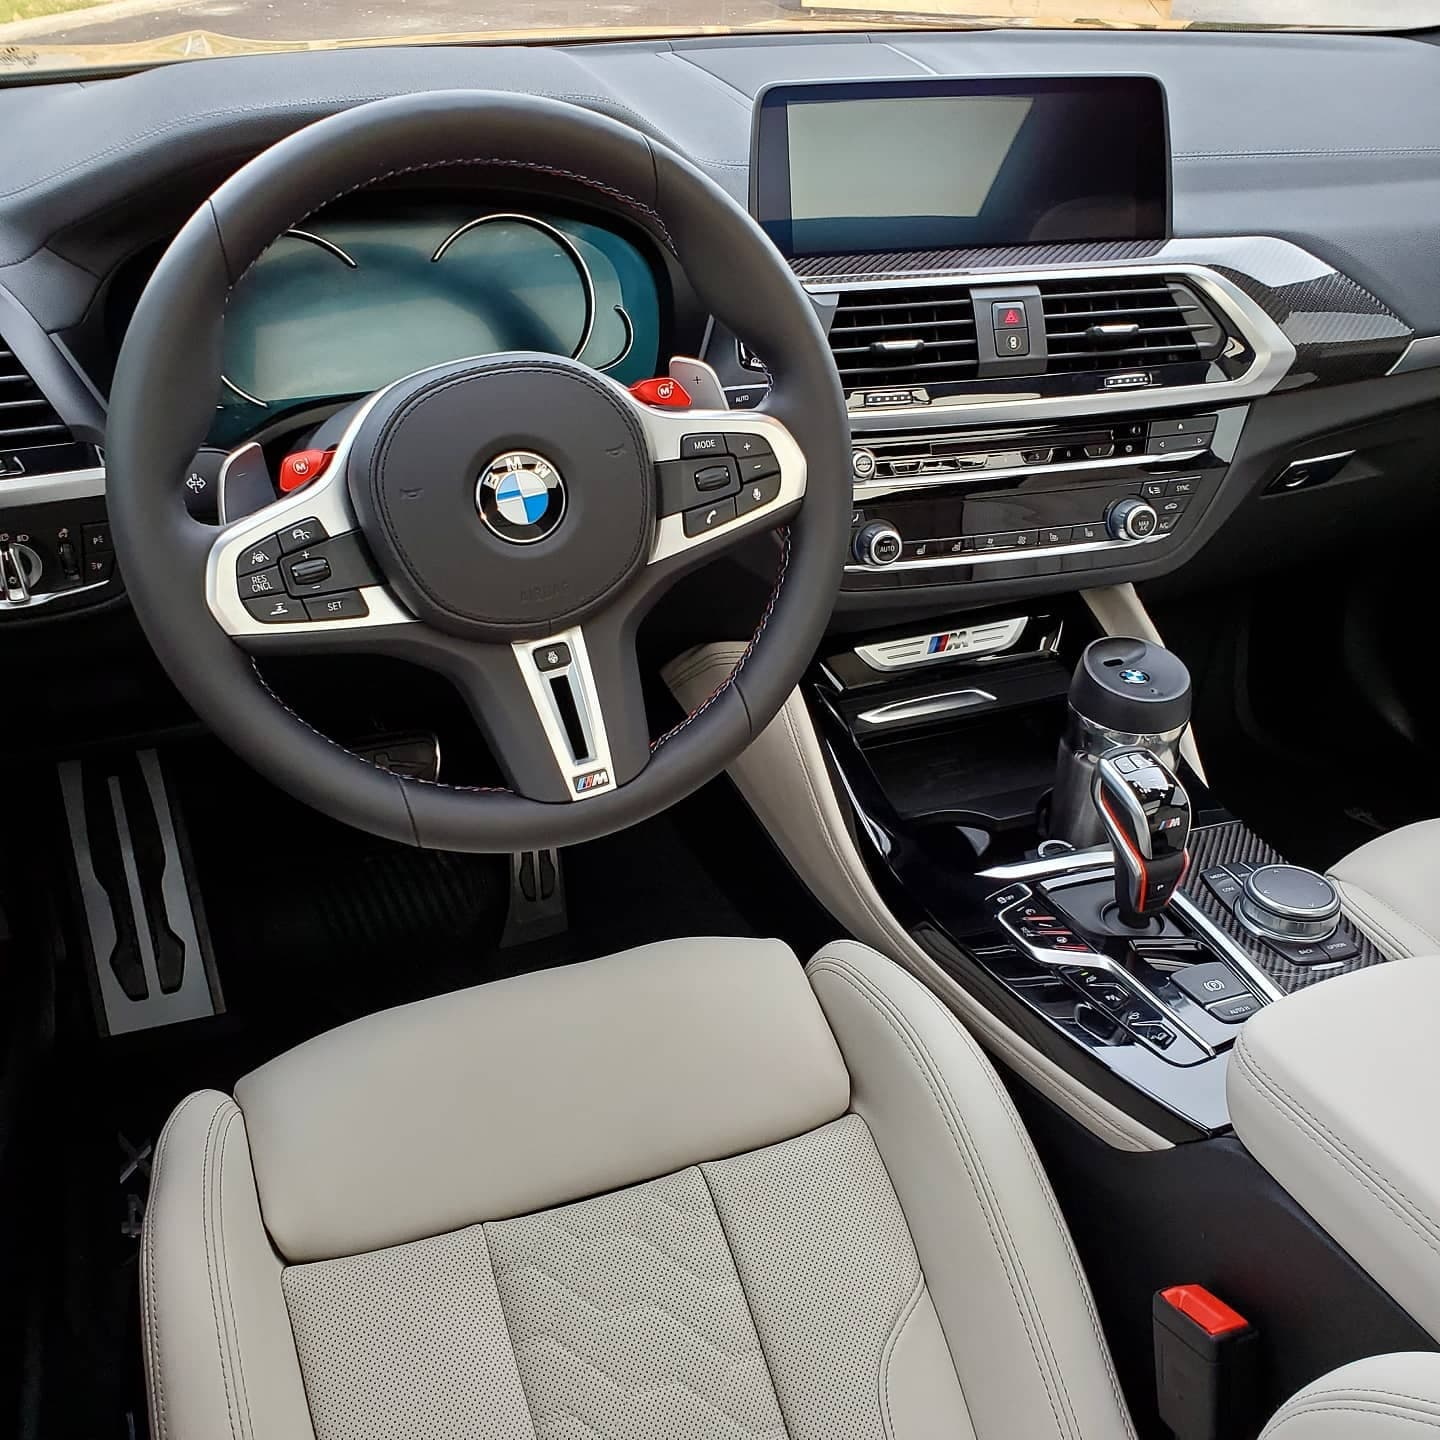 BMW I8 Interior at Autobuf fine car detailing and restyling in Kingston, Ontario